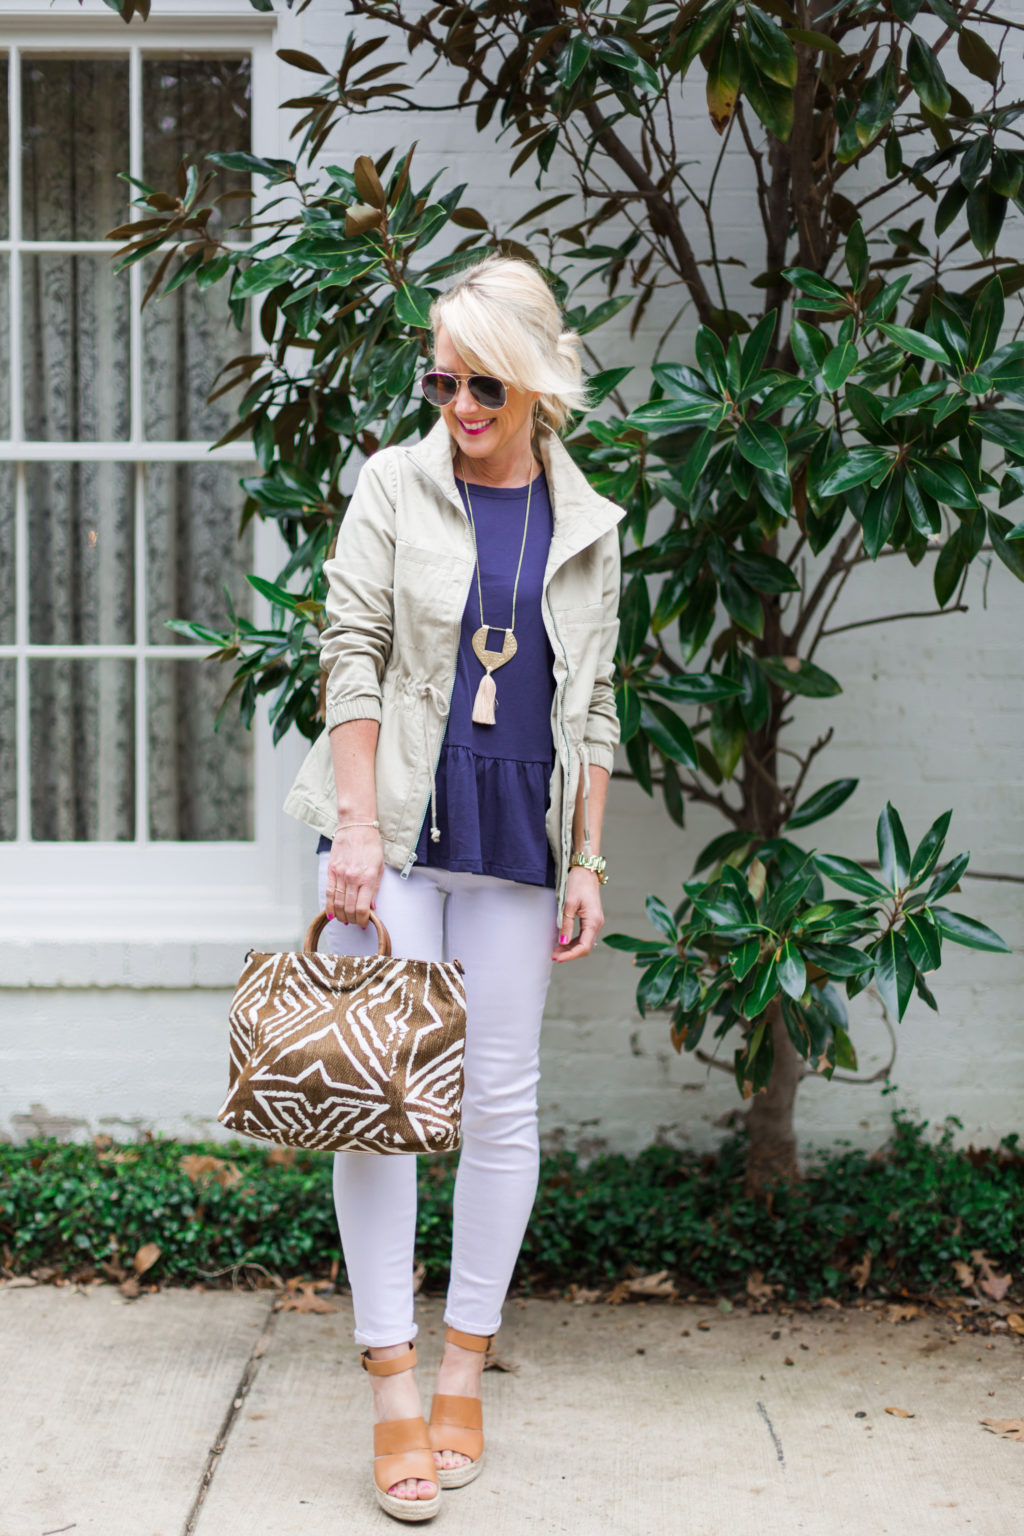 spring outfit idea white jeans and jacket for layering